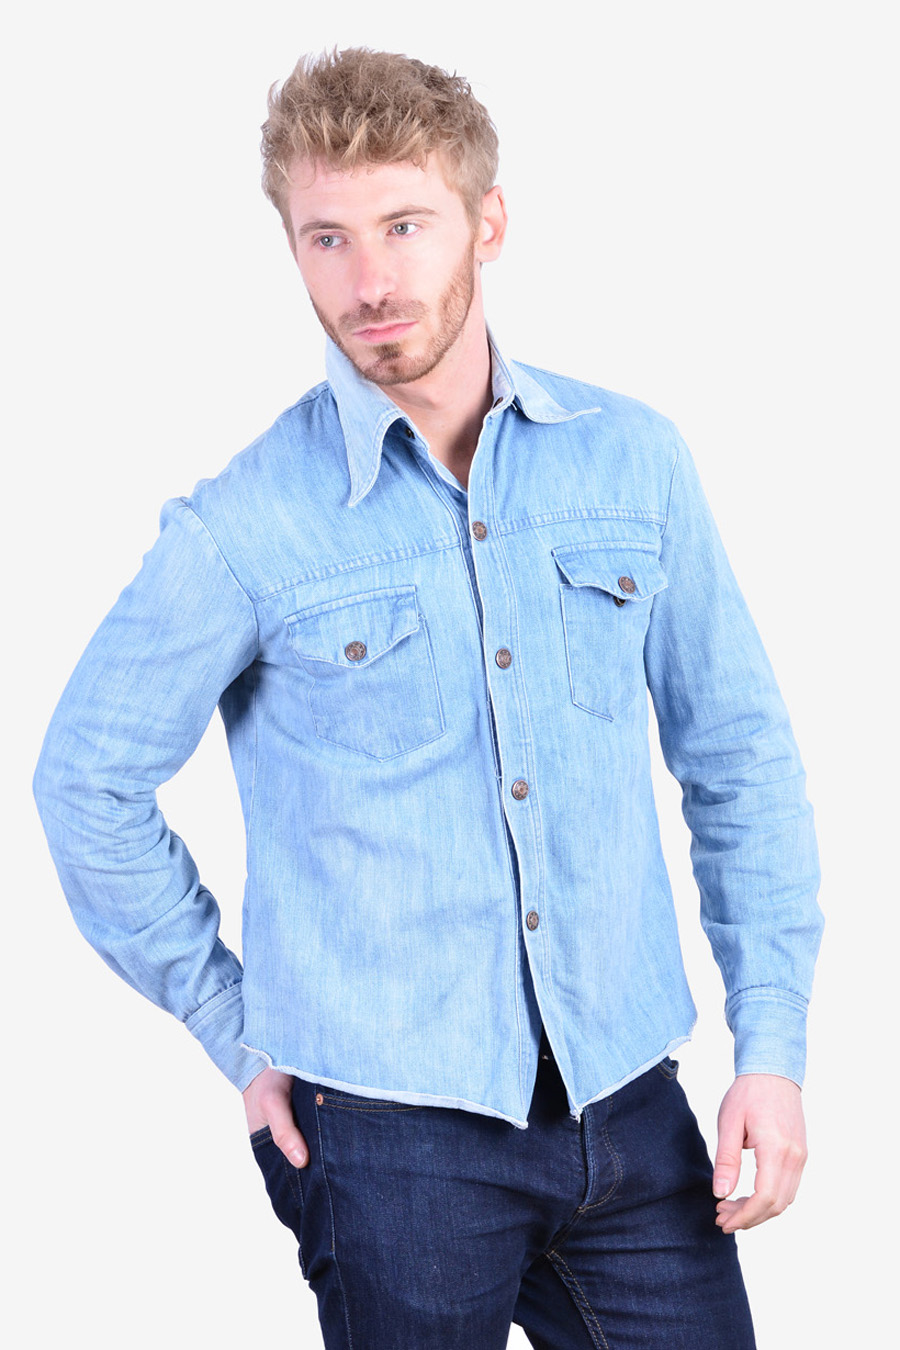 Vintage 1970's denim shirt